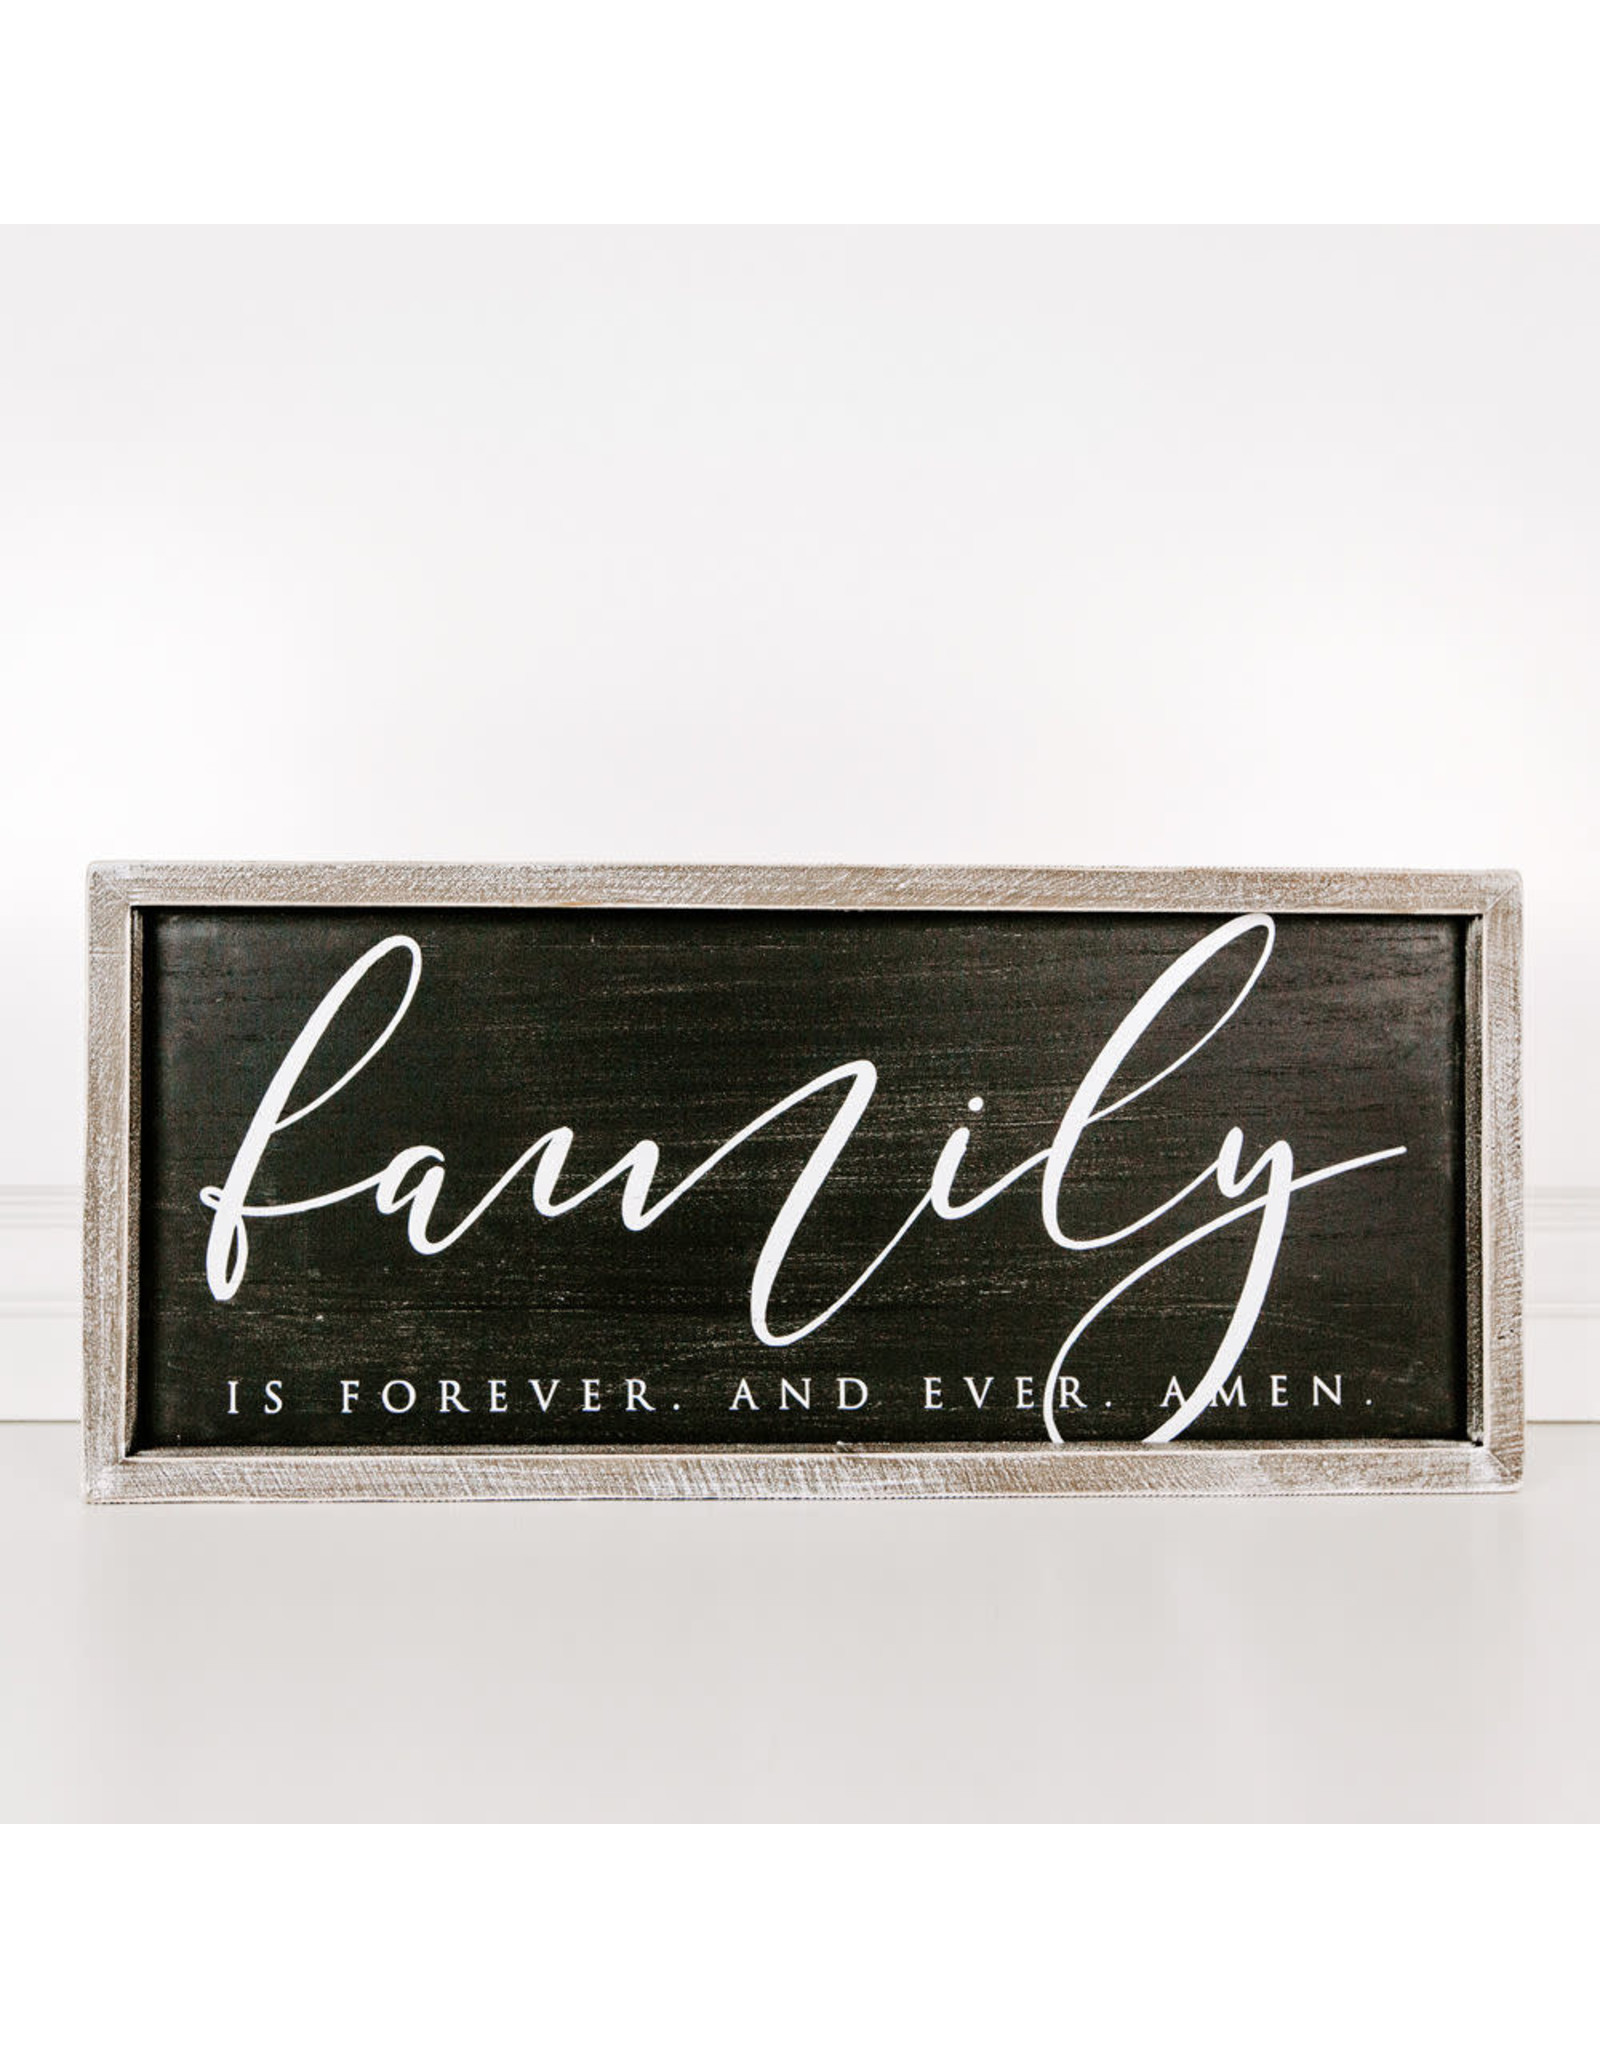 """Adams & Co. Family Is Forever And Ever...25"""" x 10.5"""" x 1.5"""" Wood Framed Sign"""